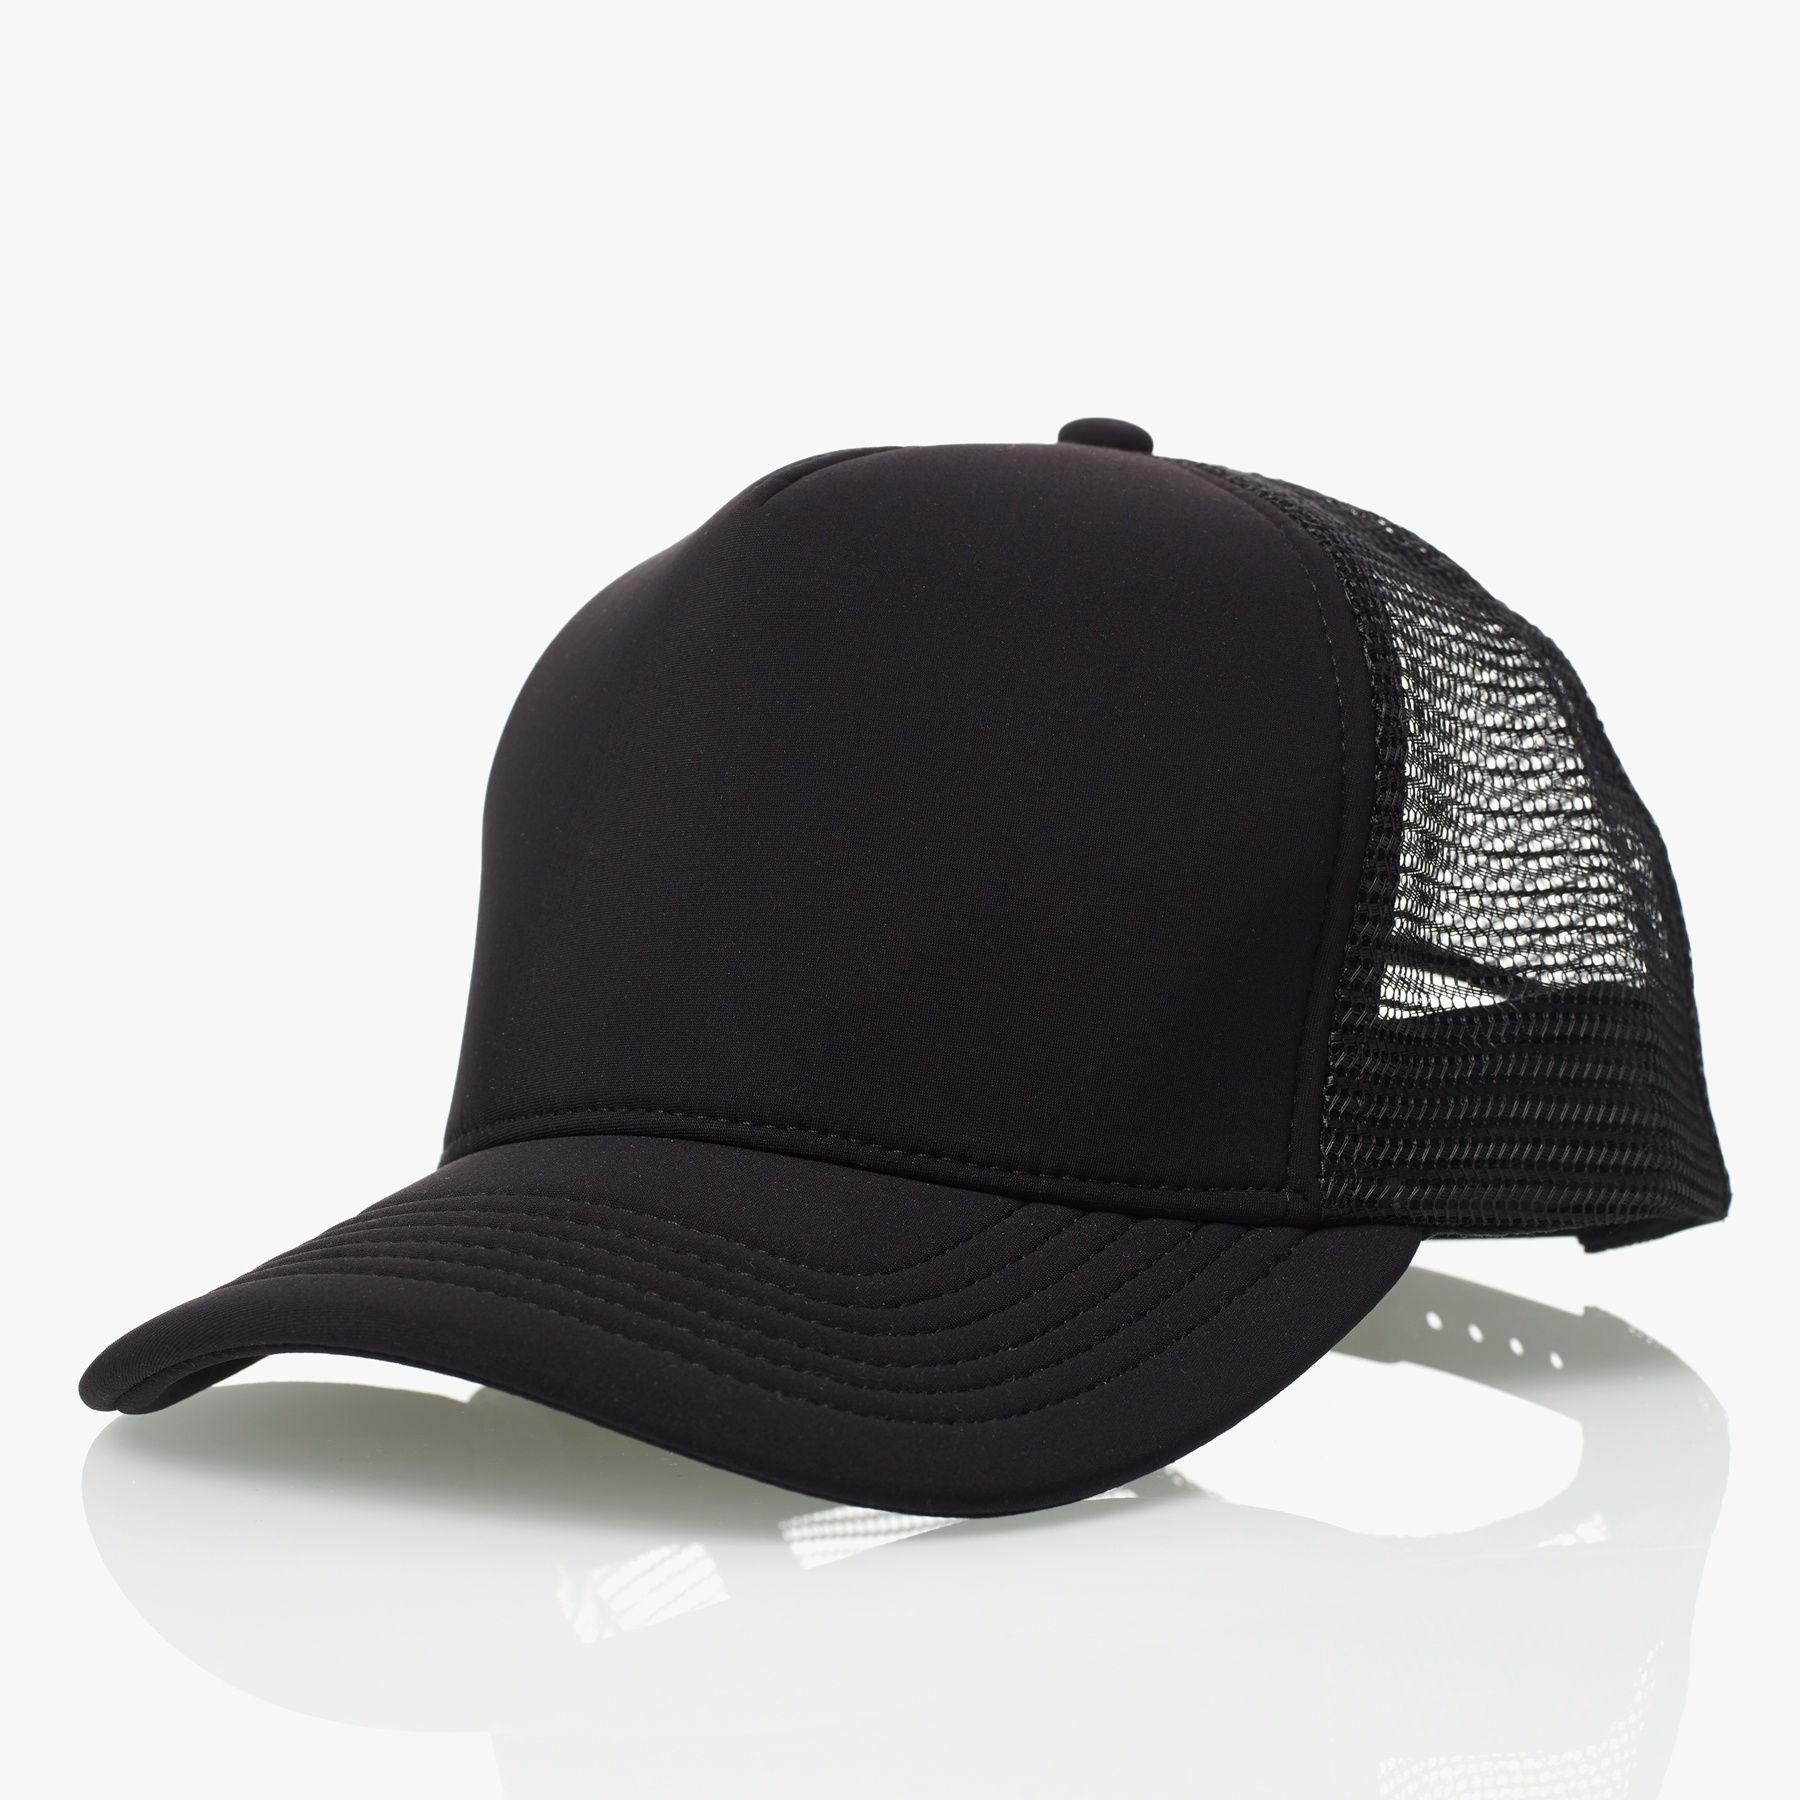 Lyst - James Perse Scuba Trucker Hat for Men 3e70c36f444